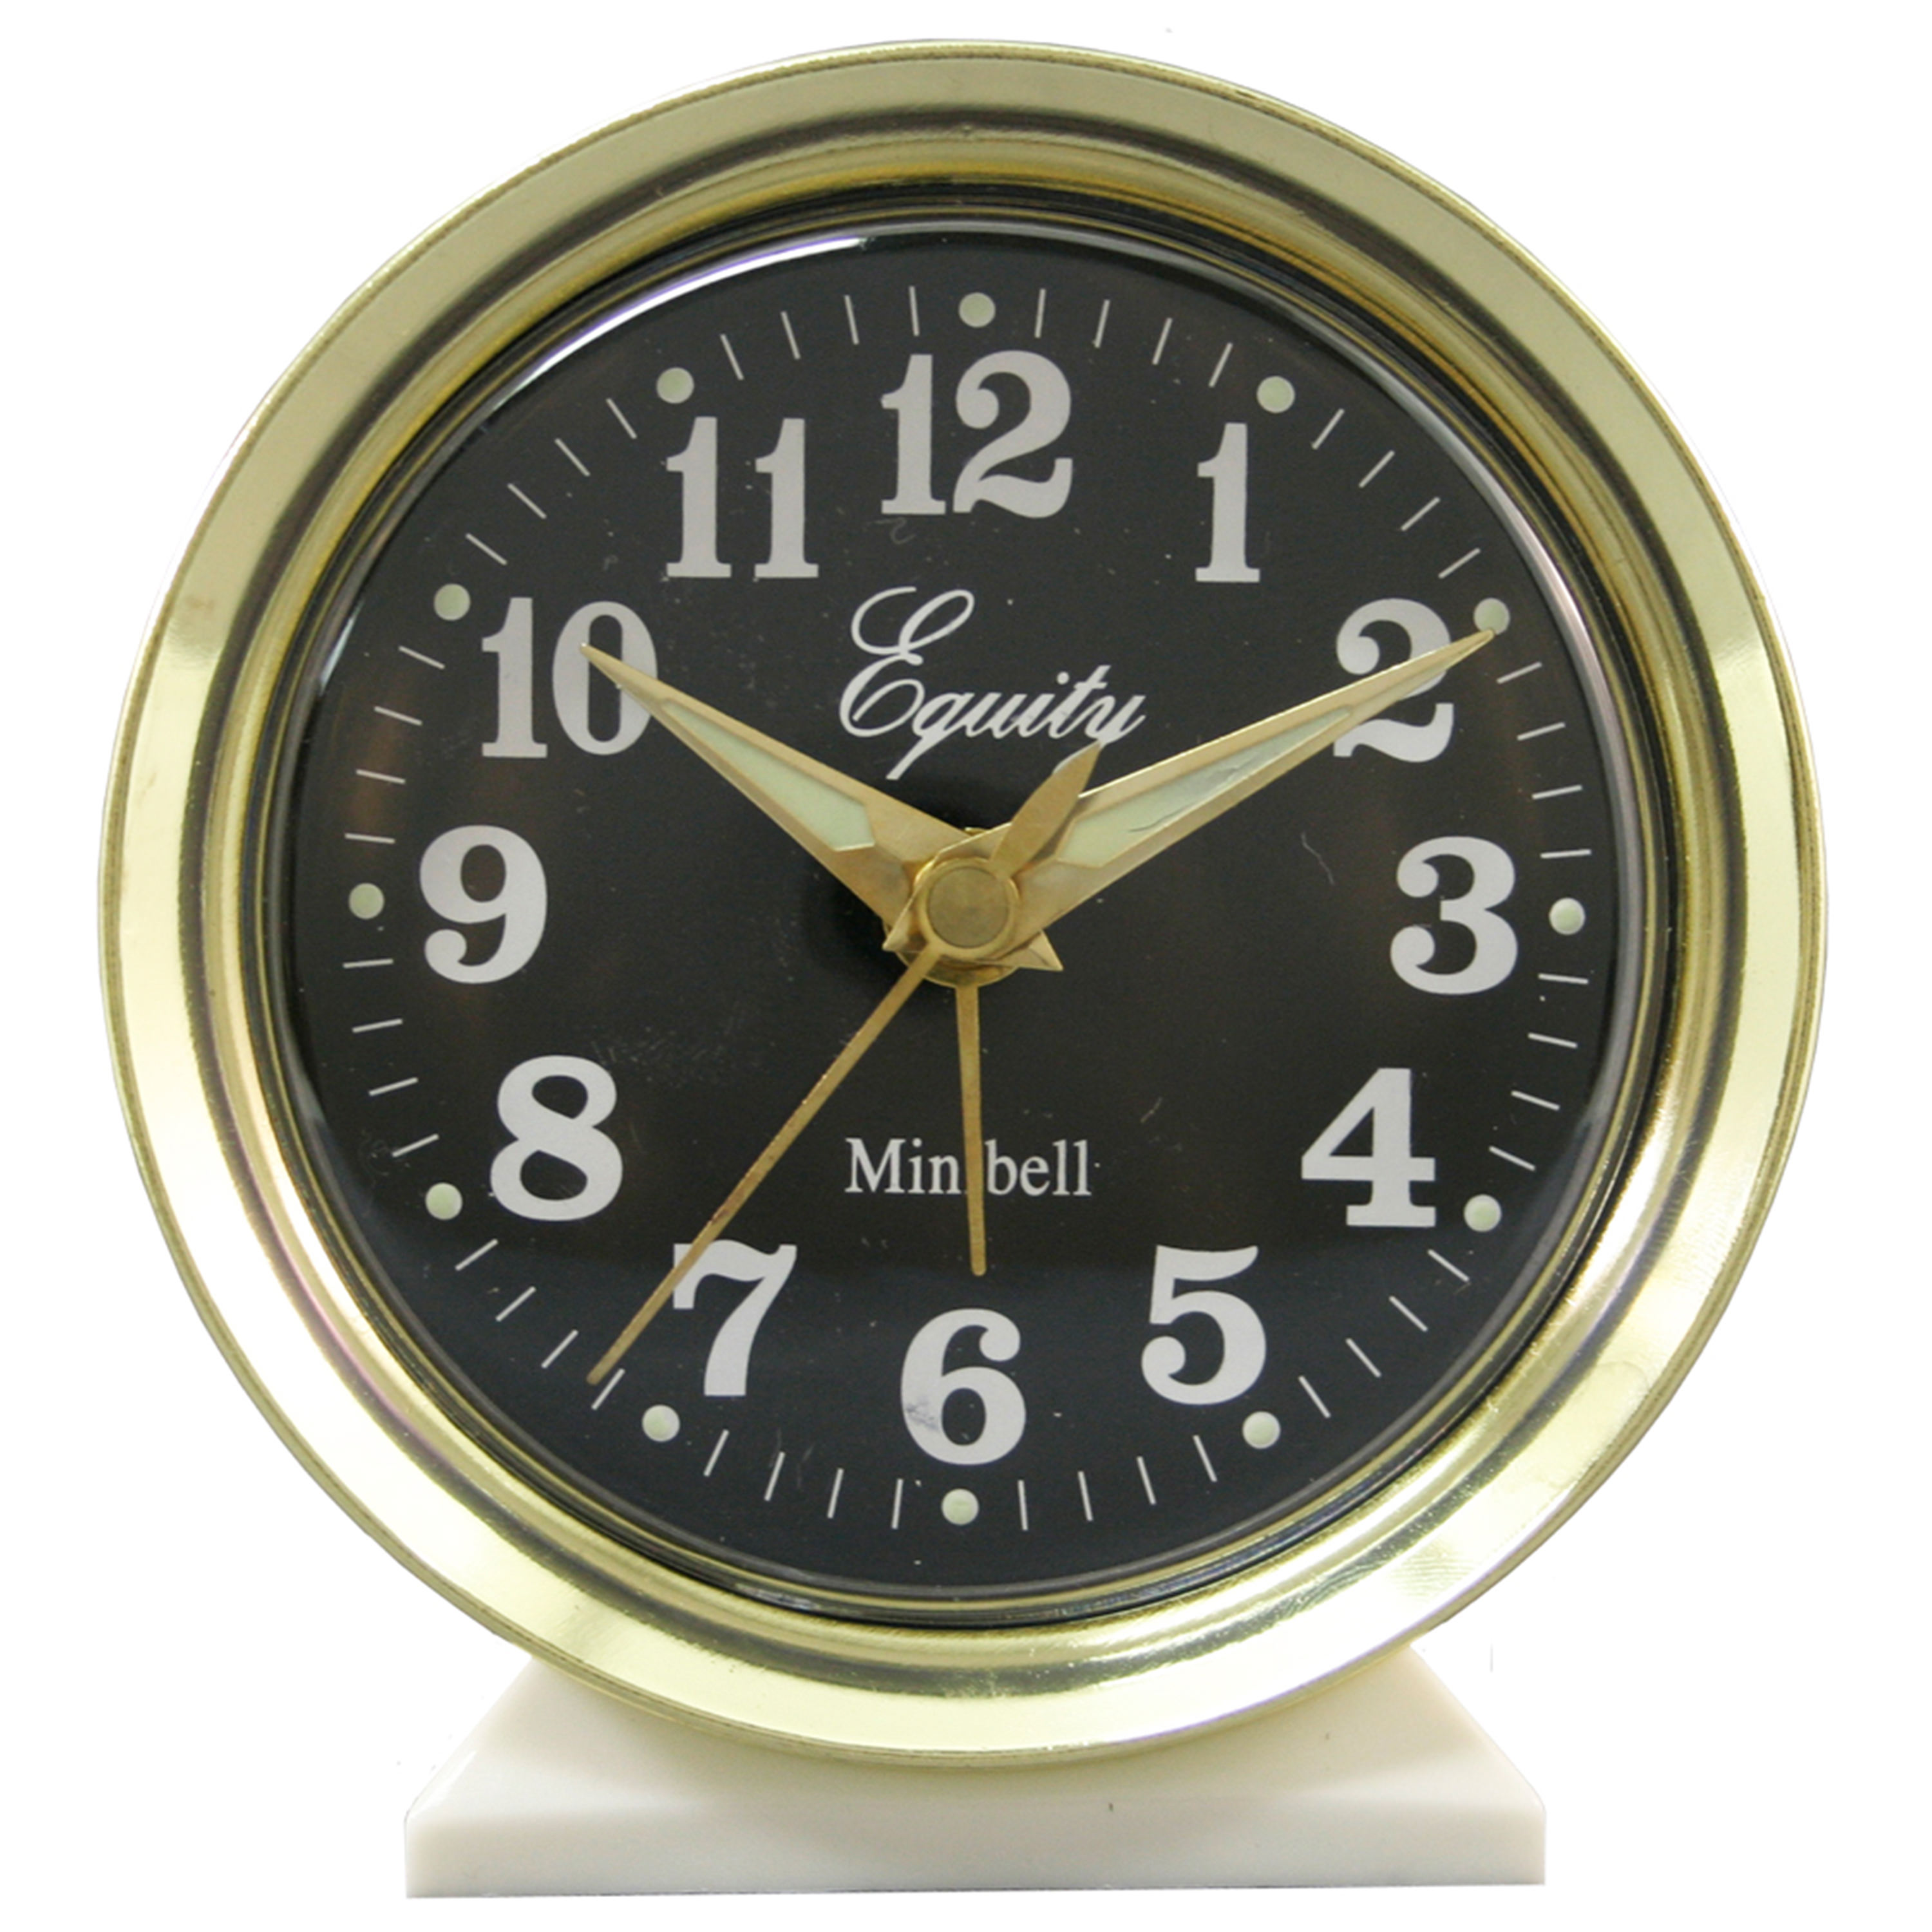 Equity By La Crosse 12020 Analog Keywind Alarm Clock